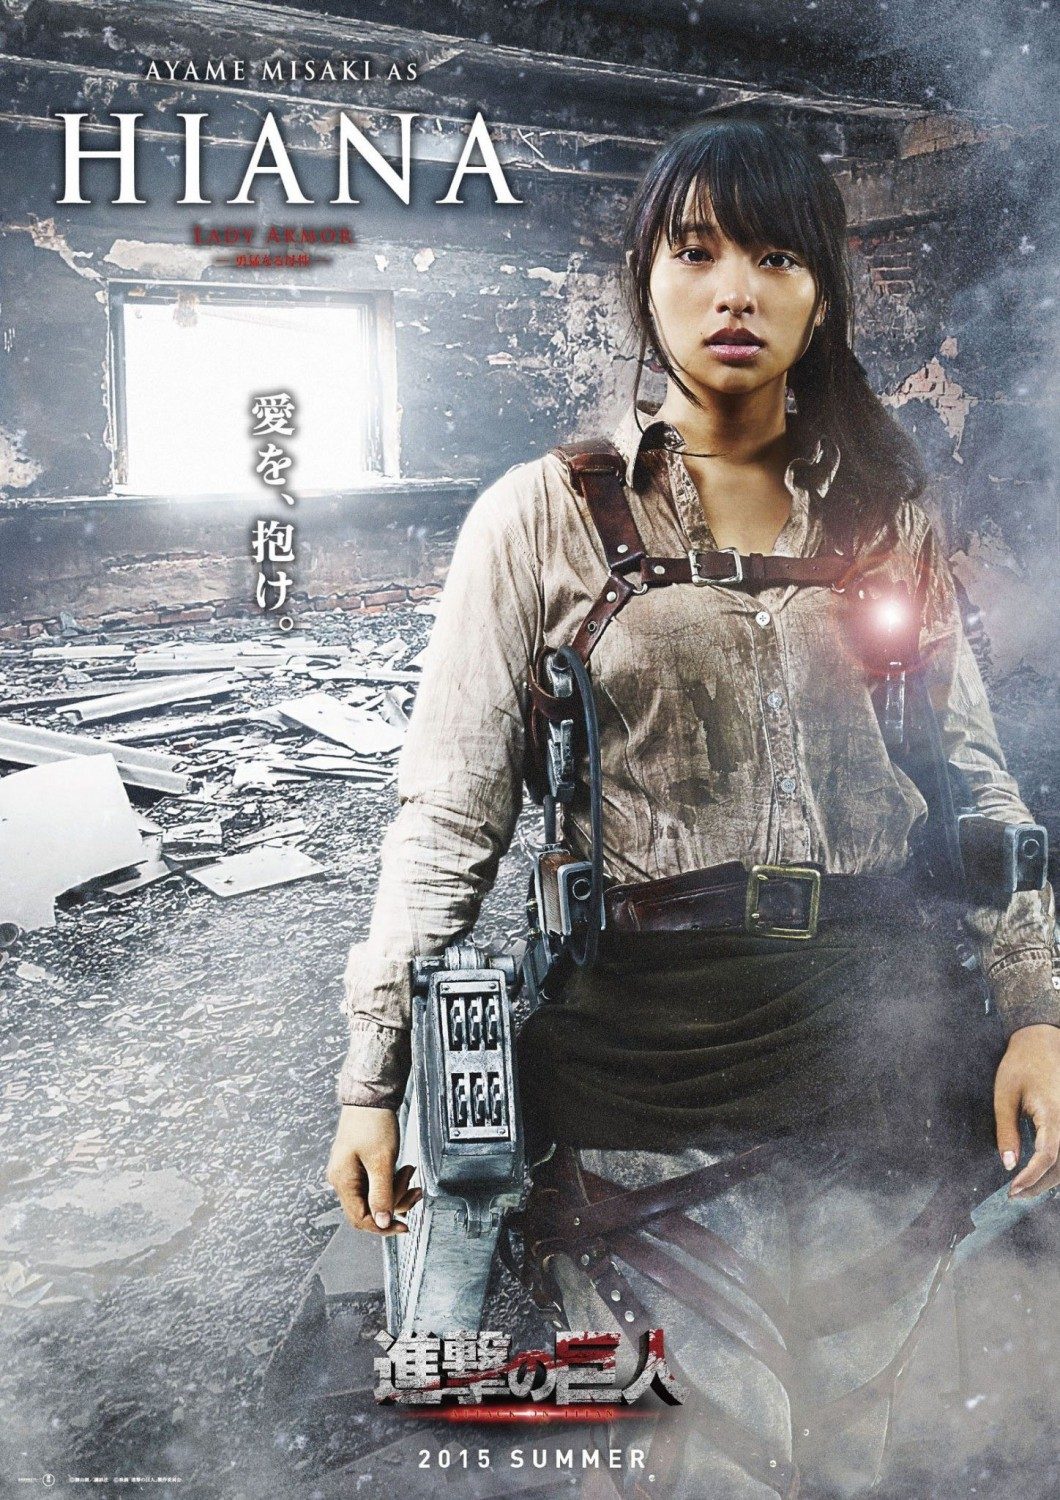 ATTACK ON TITAN Trailer, Images and Posters | The Entertainment Factor